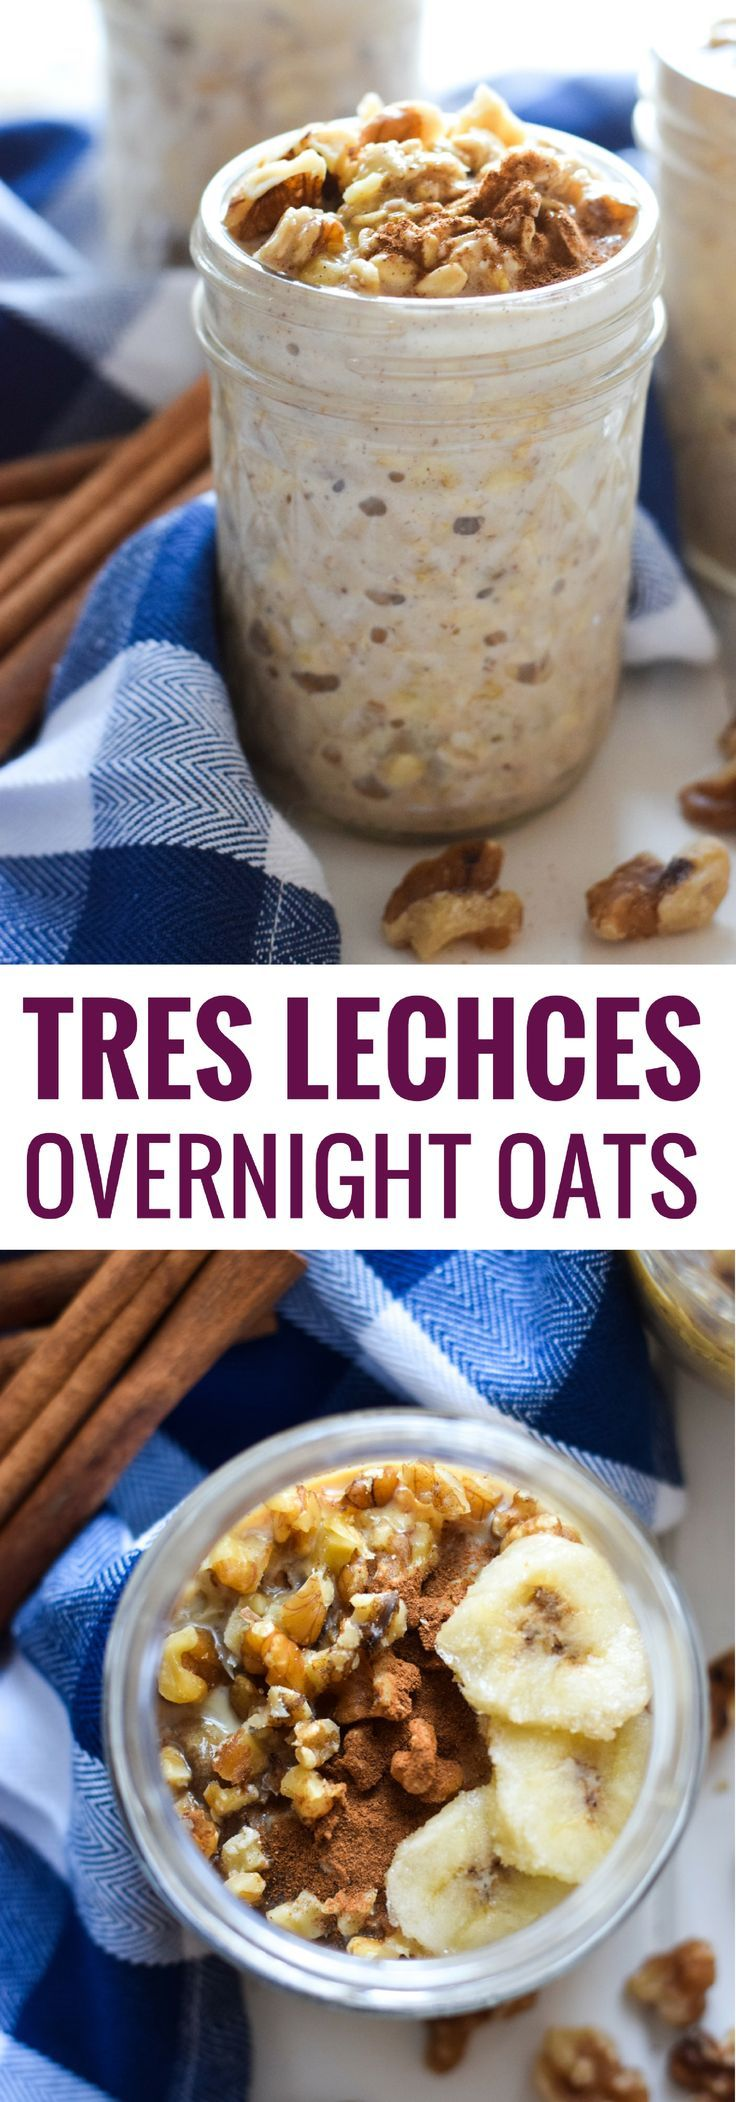 These 5-minute Mexican Tres Leches Overnight Oats topped with walnuts, bananas and cinnamon are guaranteed to sweeten your mornings.